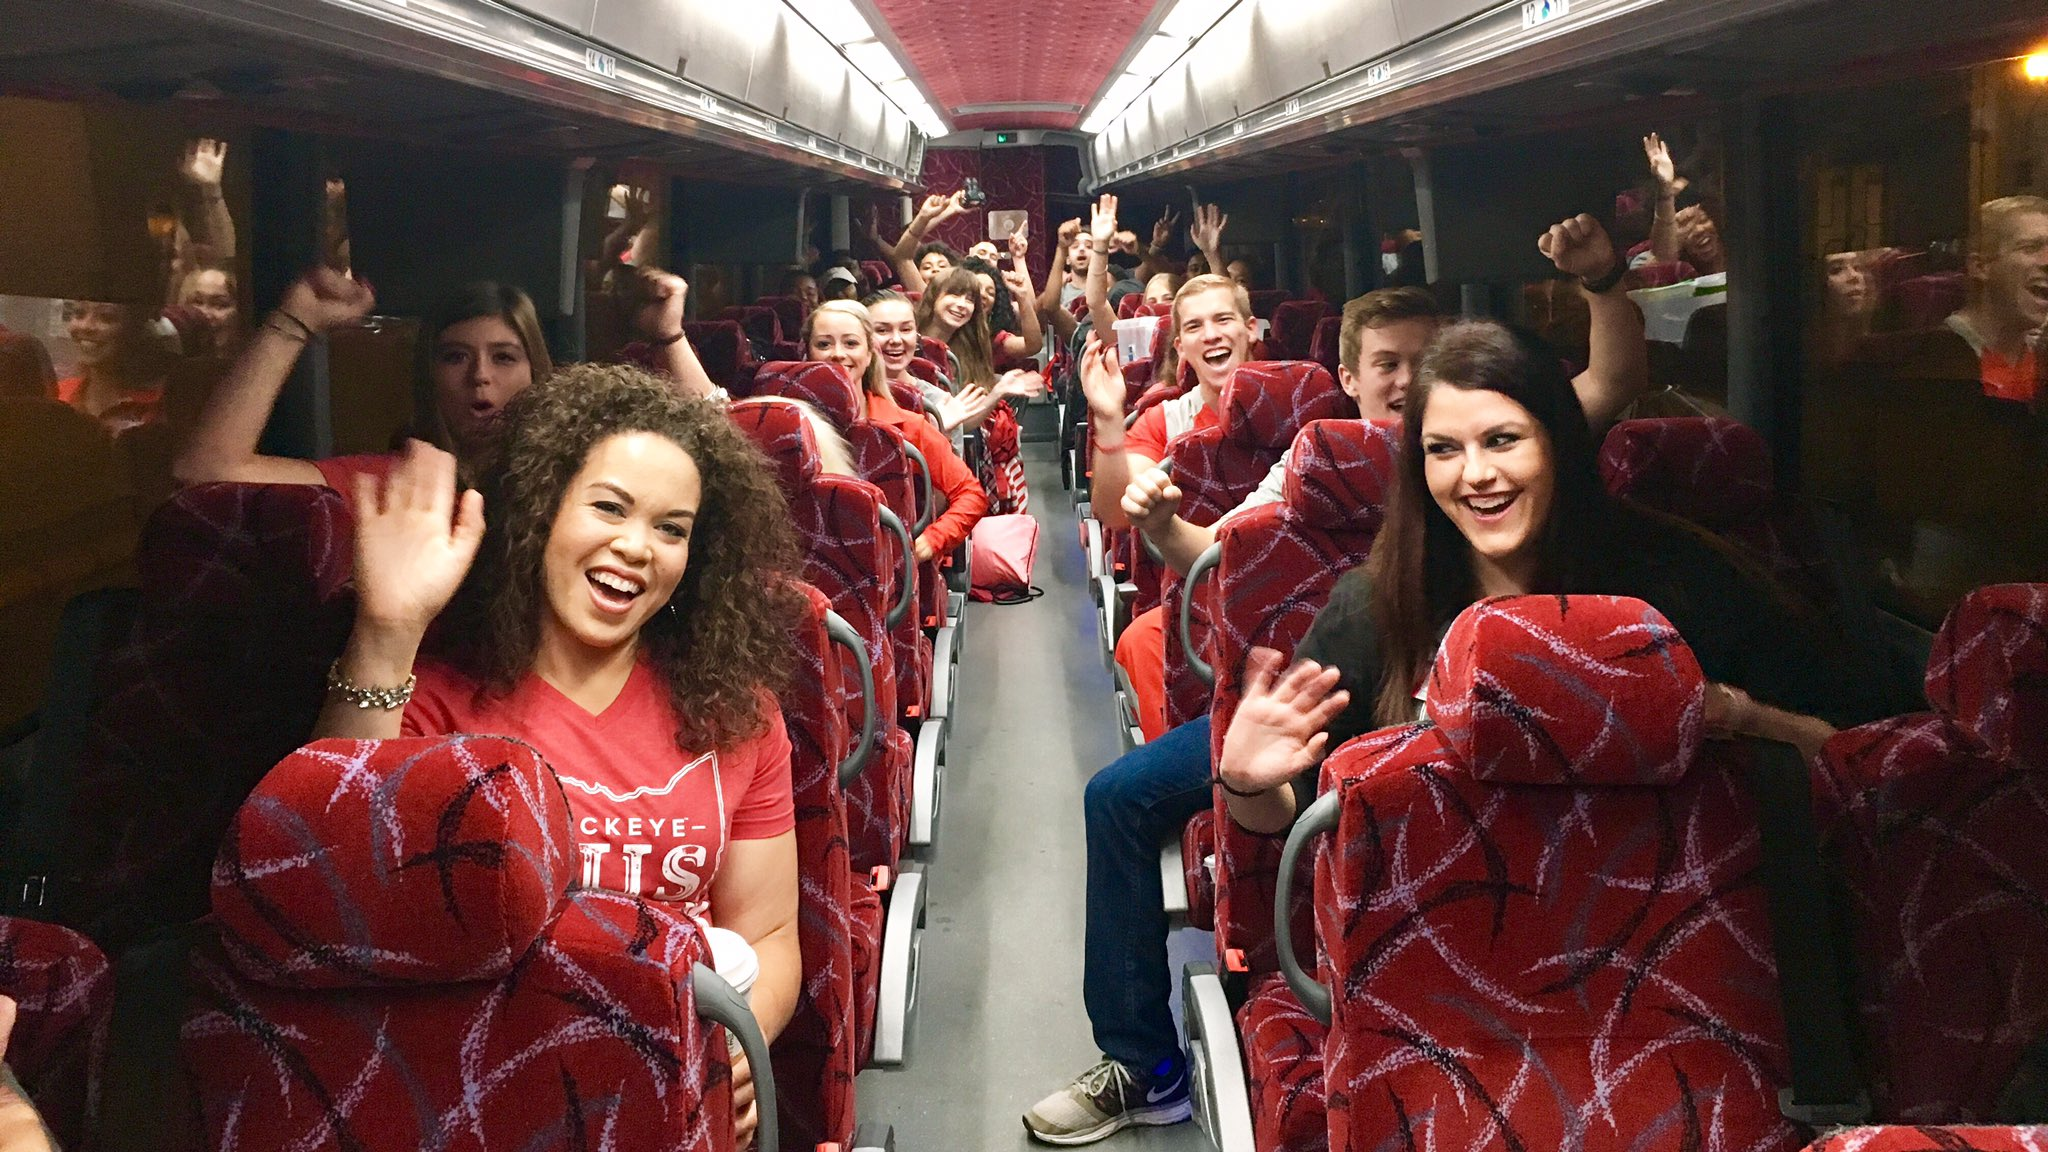 It may be raining but it's all smiles here - we're hitting the road for today's #BuckeyeBus trip with the Roads Scholars Tour! #OSUontheRoad https://t.co/iM58yIFS2c